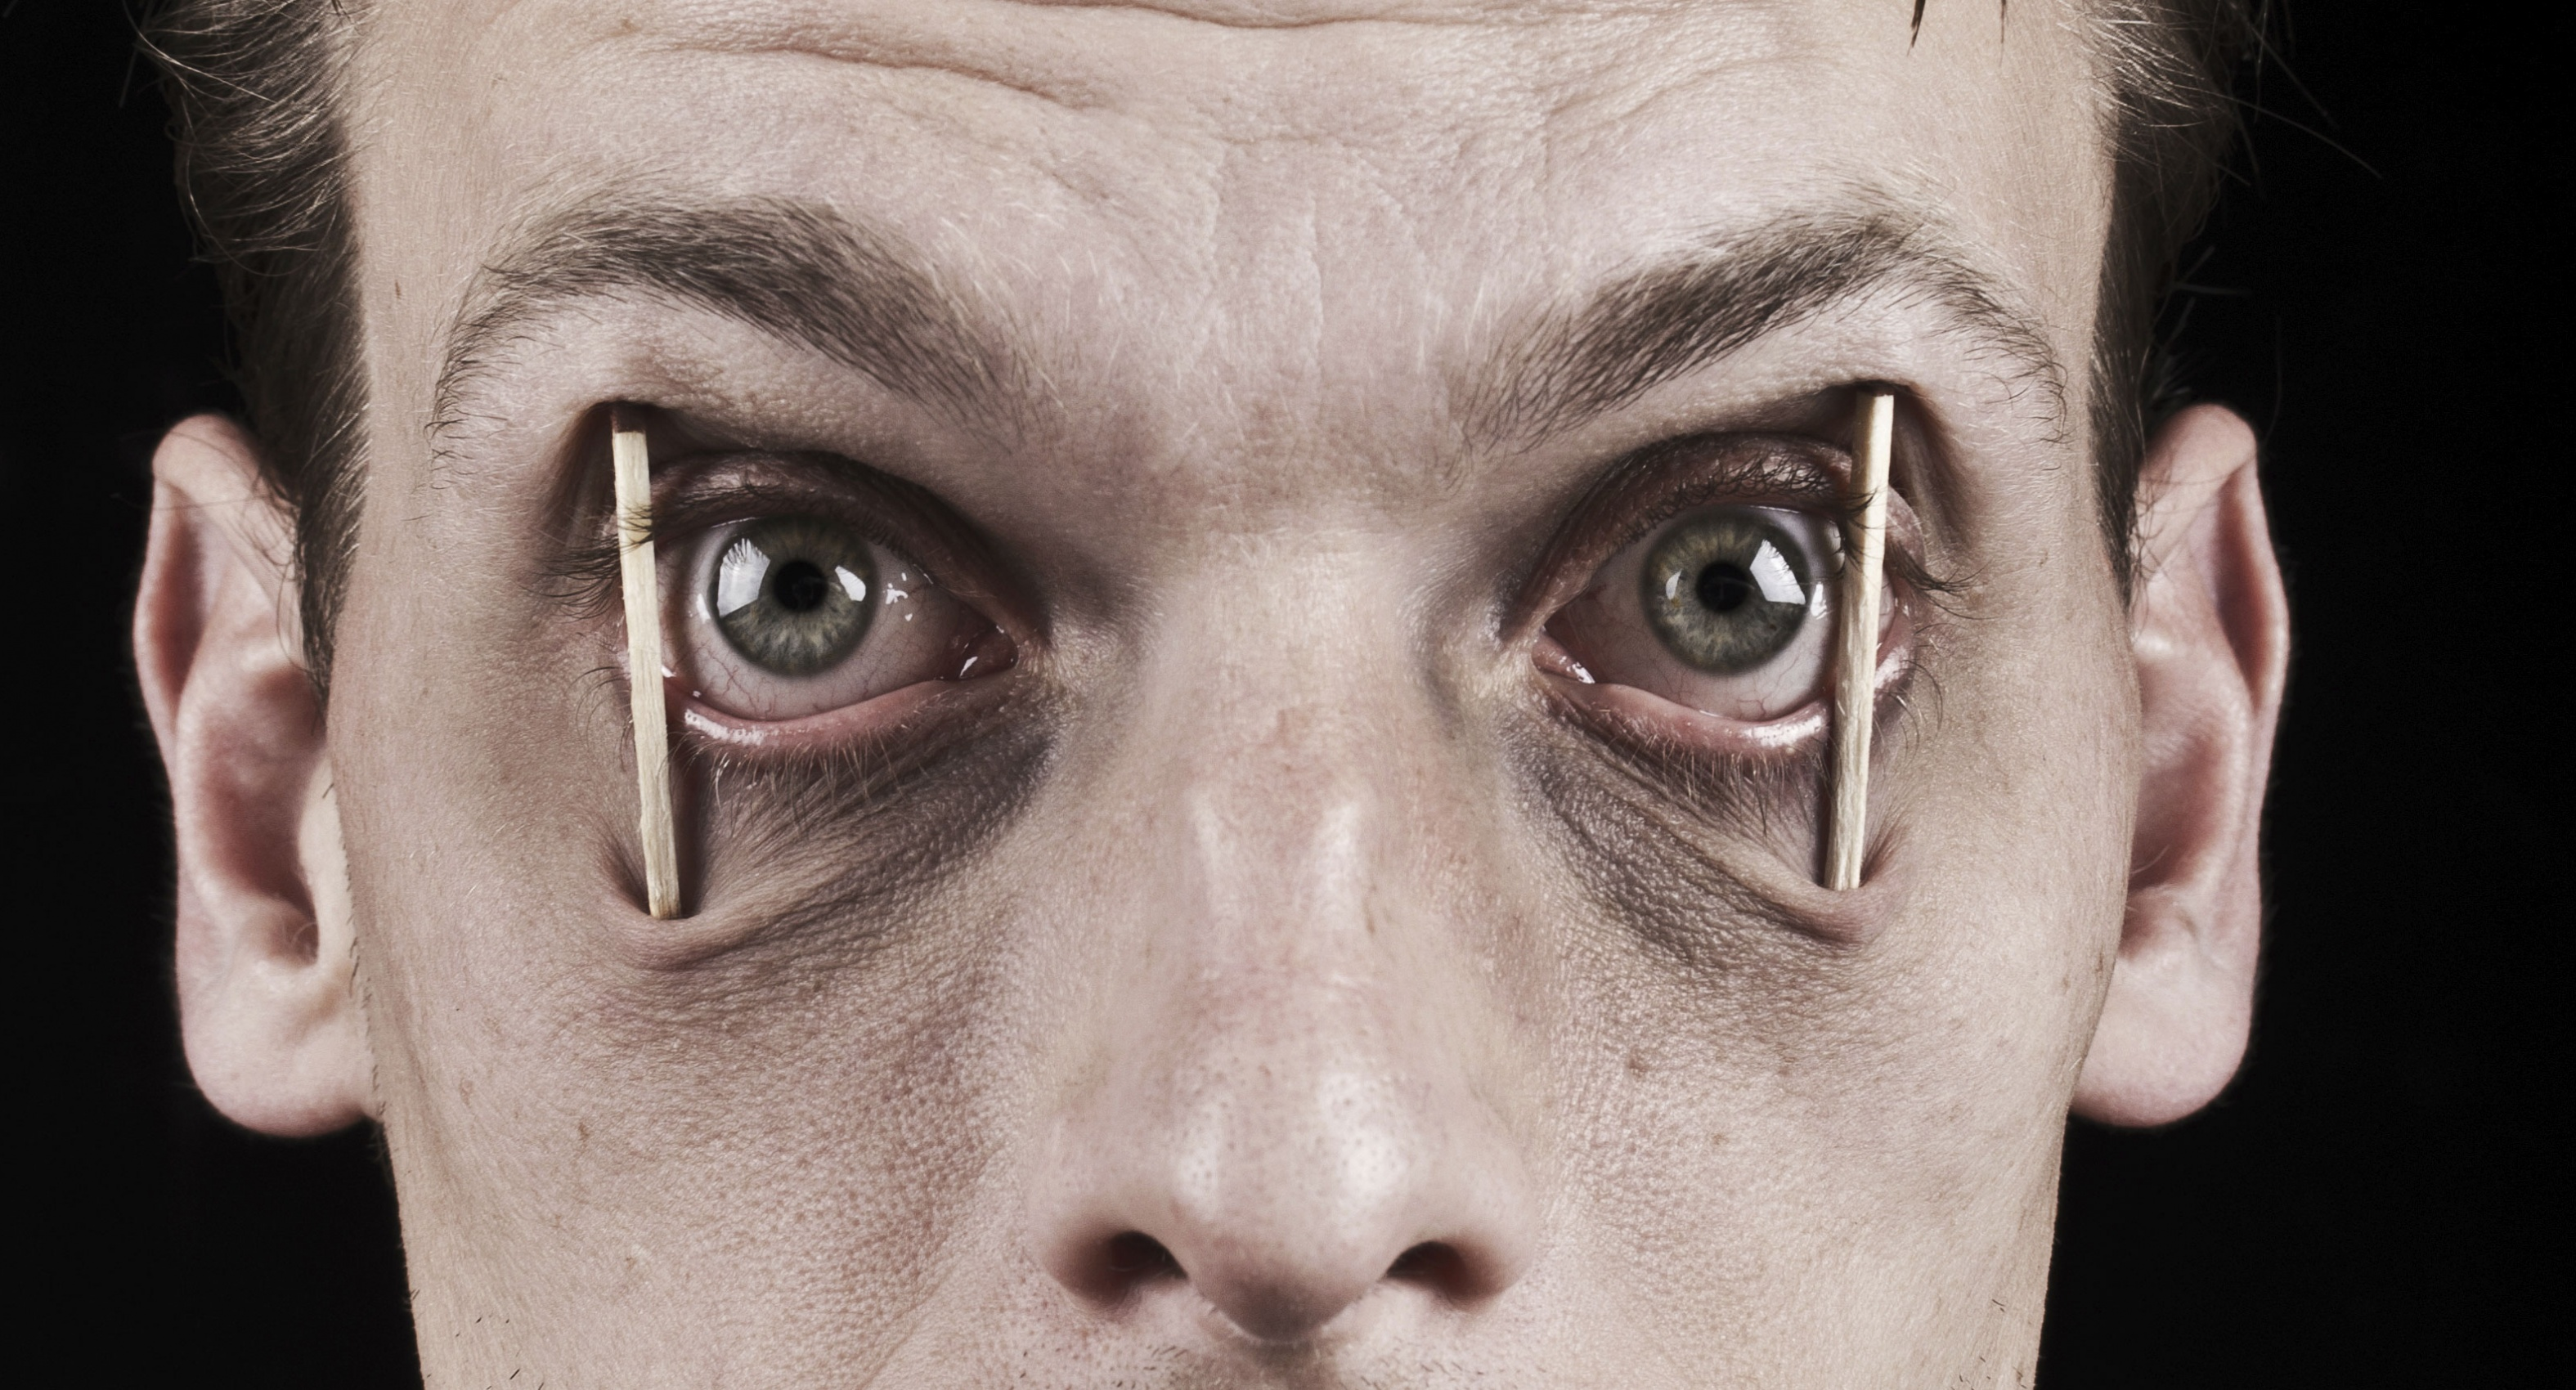 The 10 Weirdest Phobias You Could Have